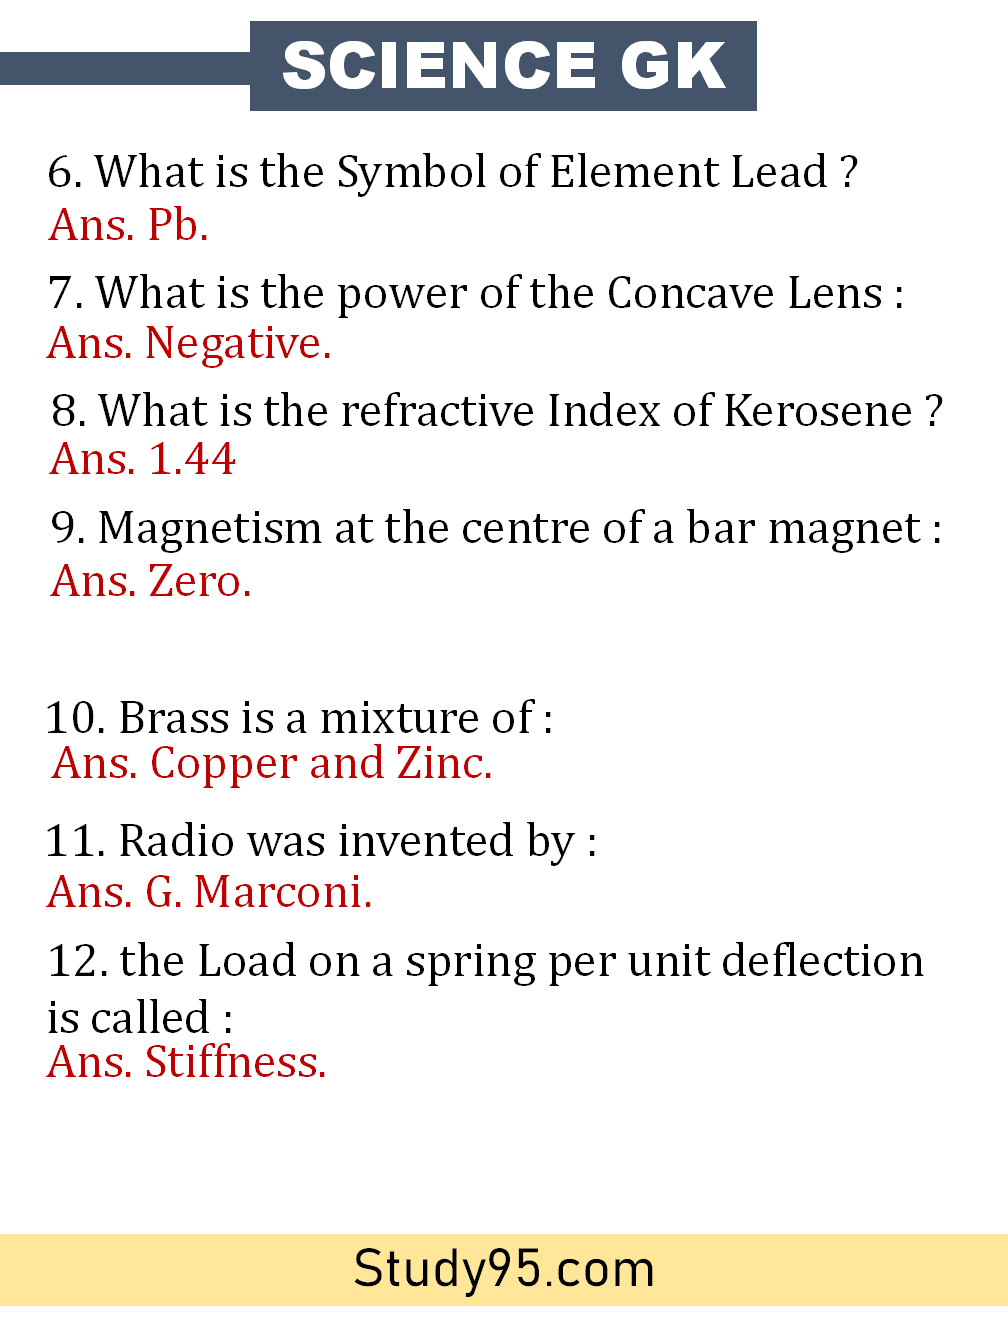 Gk Questions With Answers In English Gk Questions And Answers General Knowledge Quiz Questions General Knowledge Facts